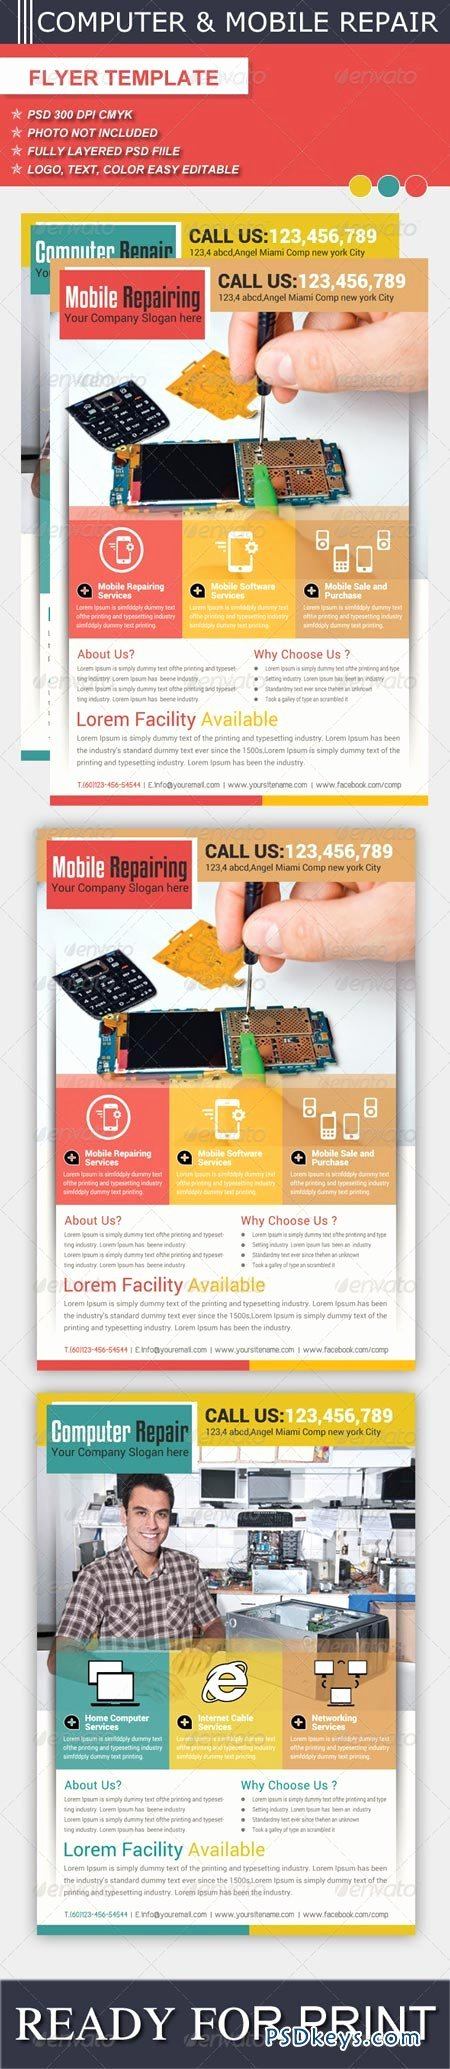 Computer Repair Flyer Templates Awesome Puter & Mobile Repair Flyer Template Free Download Shop Vector Stock Image Via